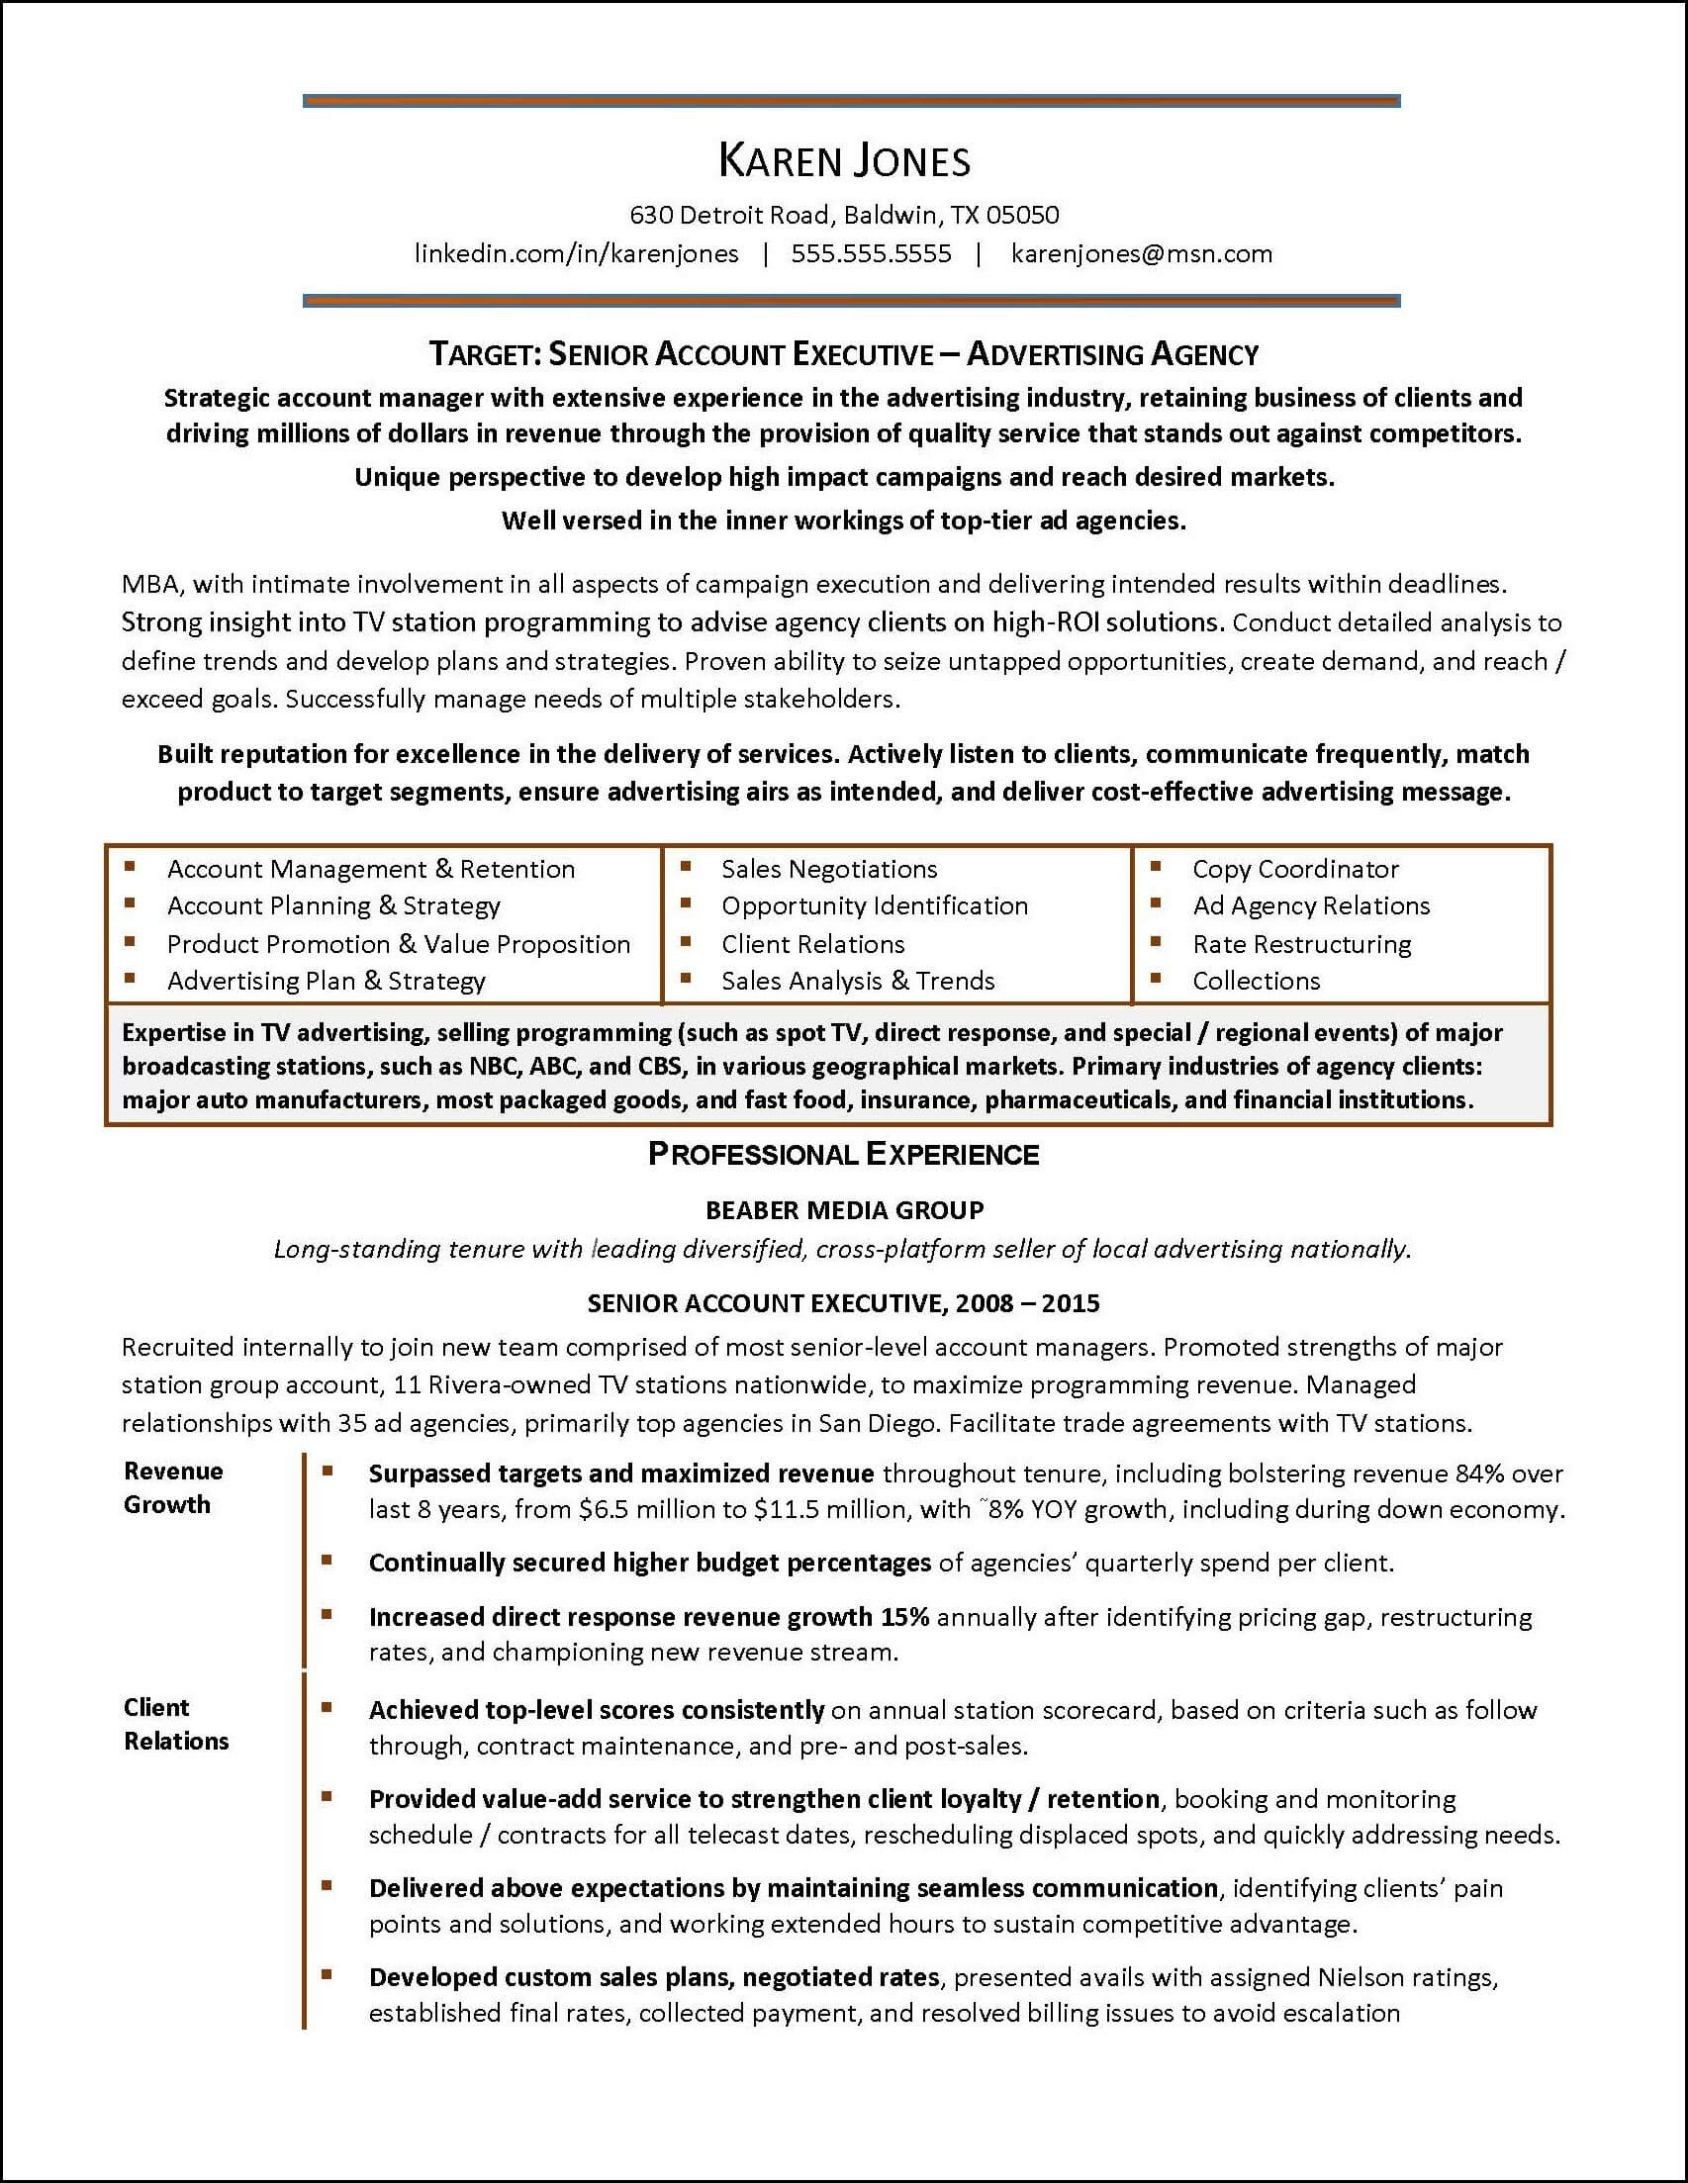 Advertising Account Executive Resume Fair 101  Pinterest  Resume Examples And Template